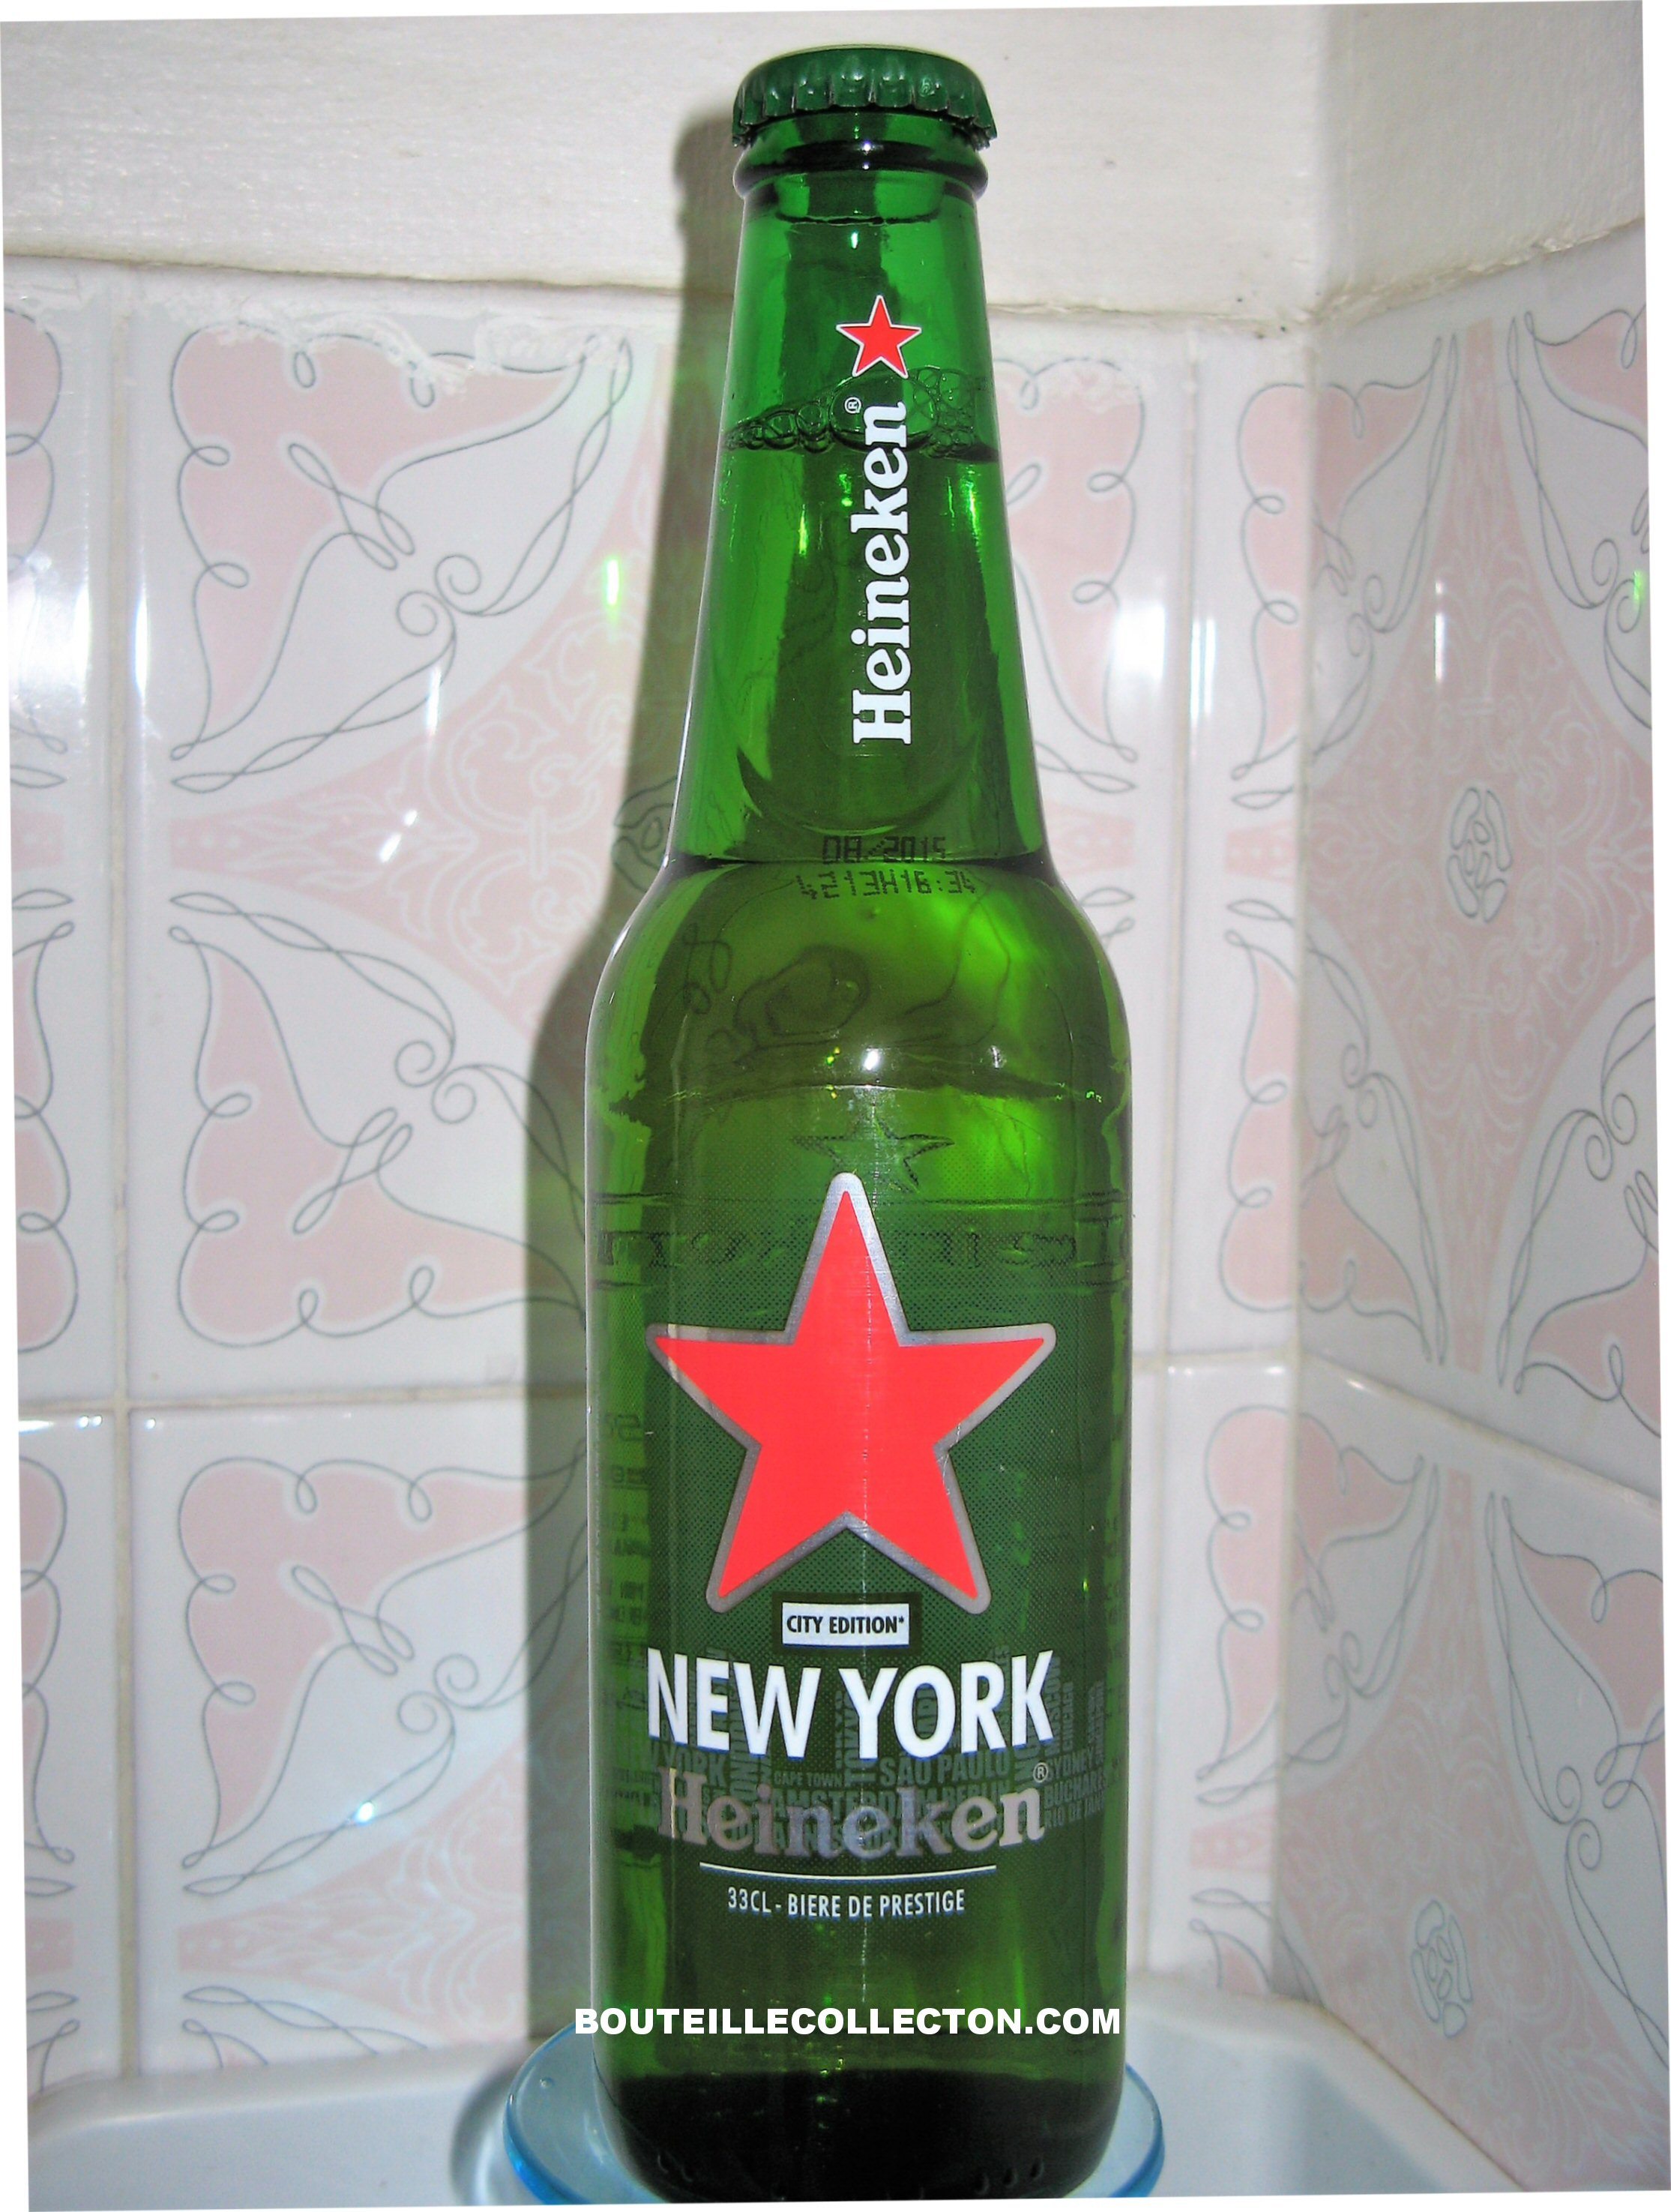 AC HEINEKEN CITY EDITION NEW YORK 2014 33CL B.jpg